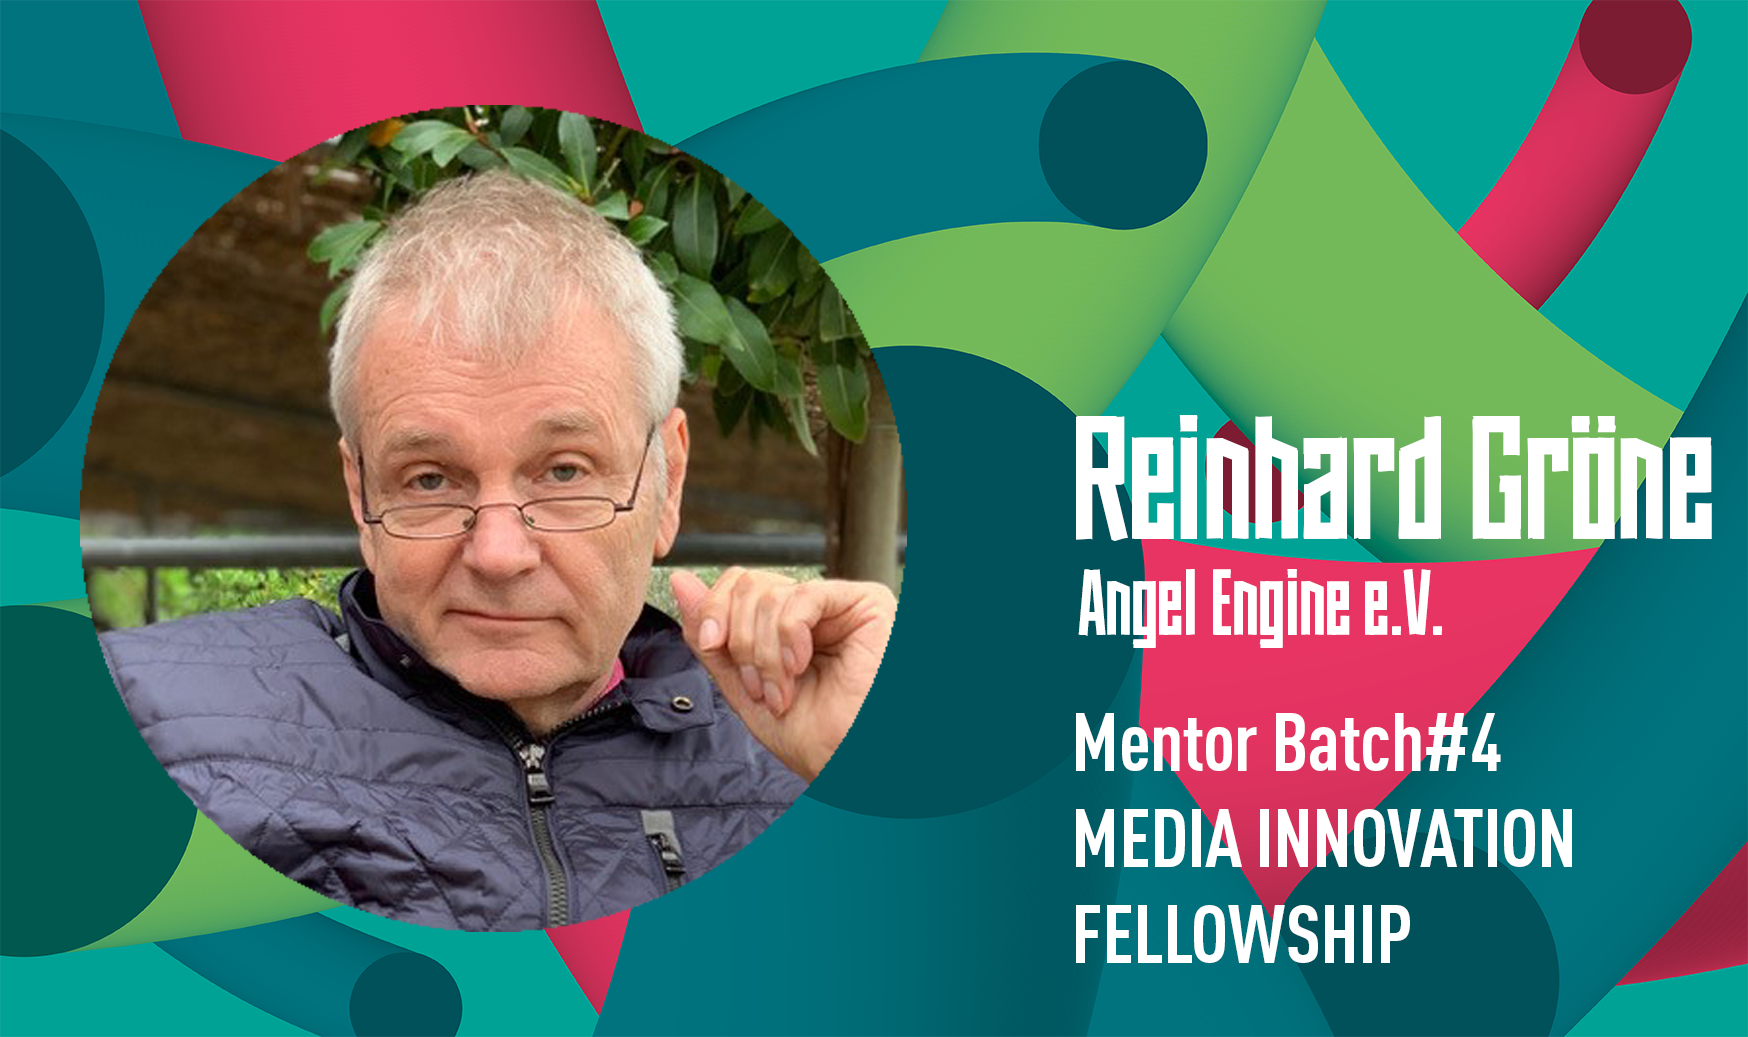 Reinhard Gröne: Mentor während des Media Innovation Fellowship Batch#4